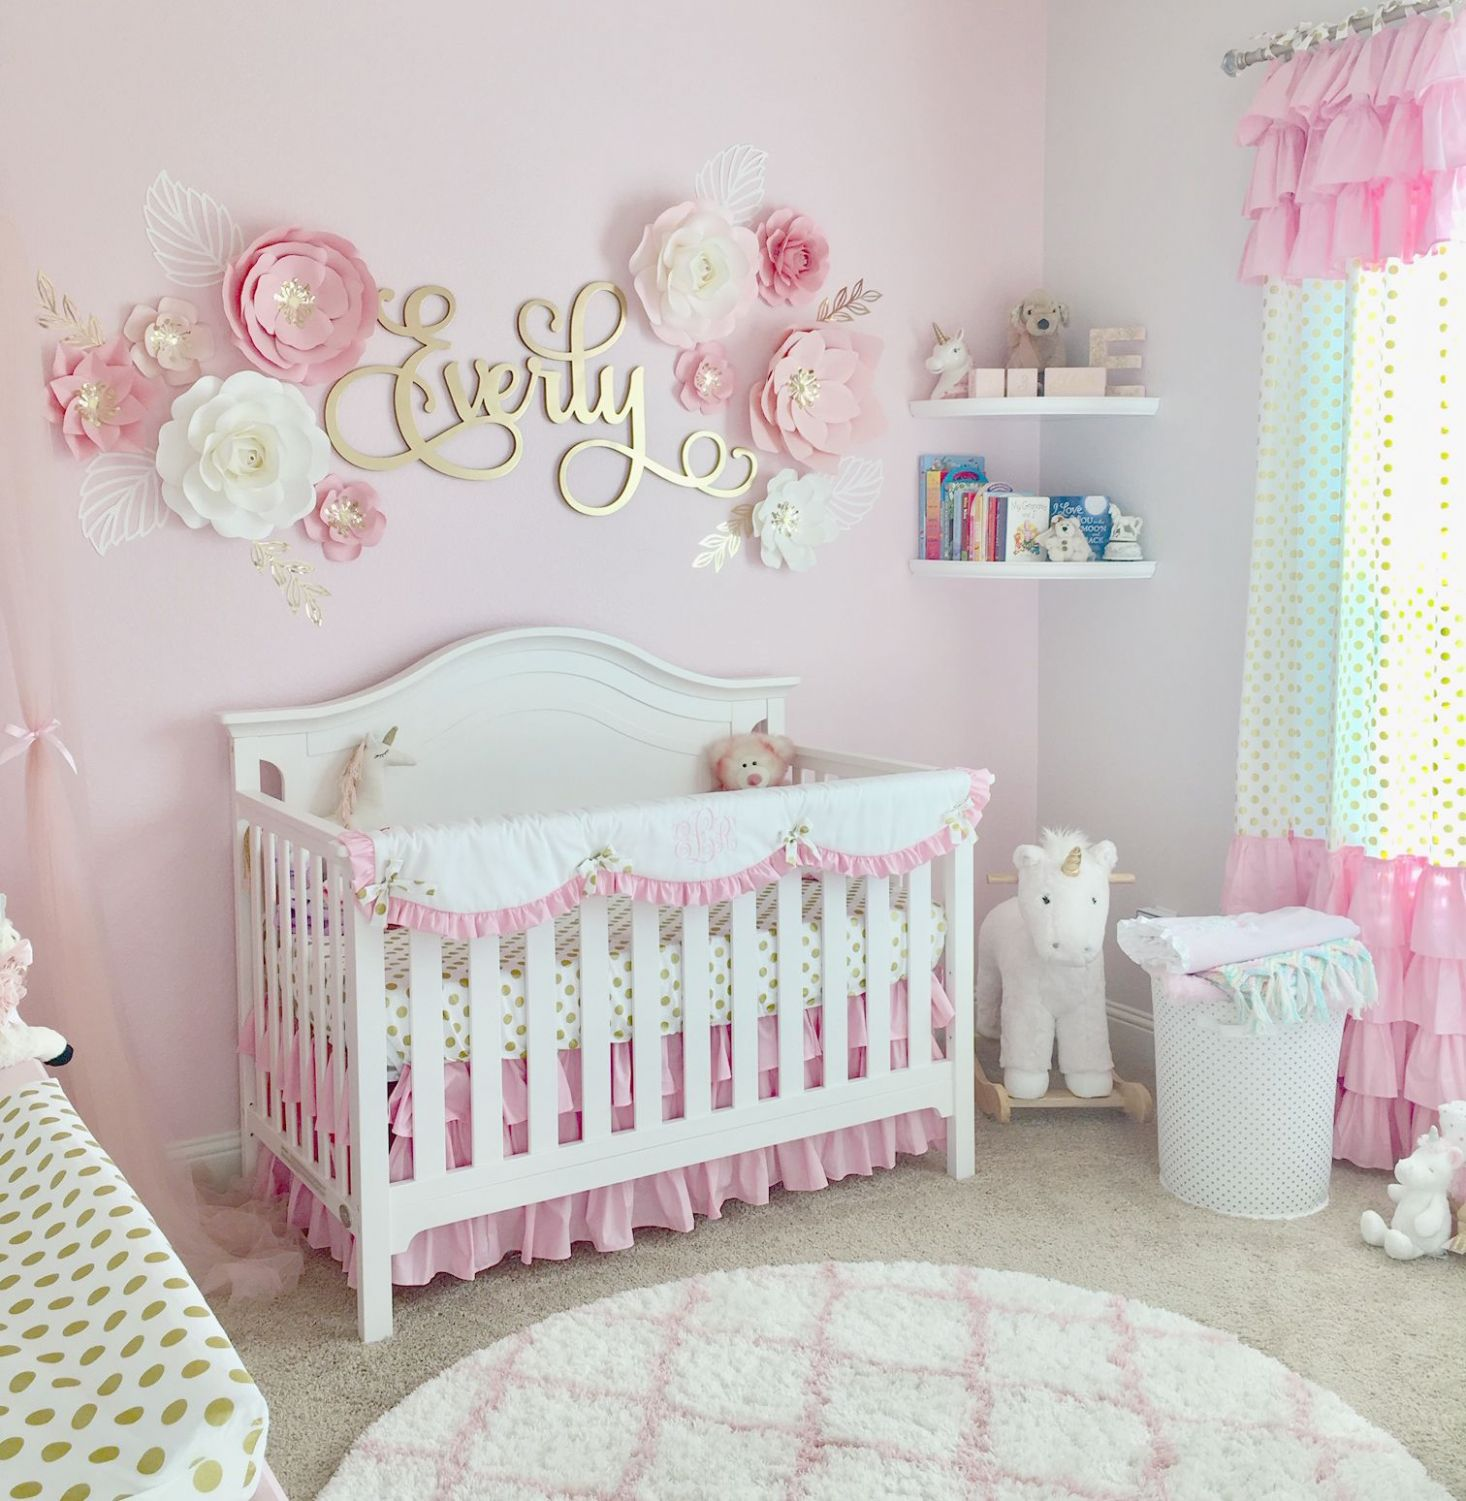 A Pink & Gold Nursery for Baby Everly (With images) | Pink gold ..